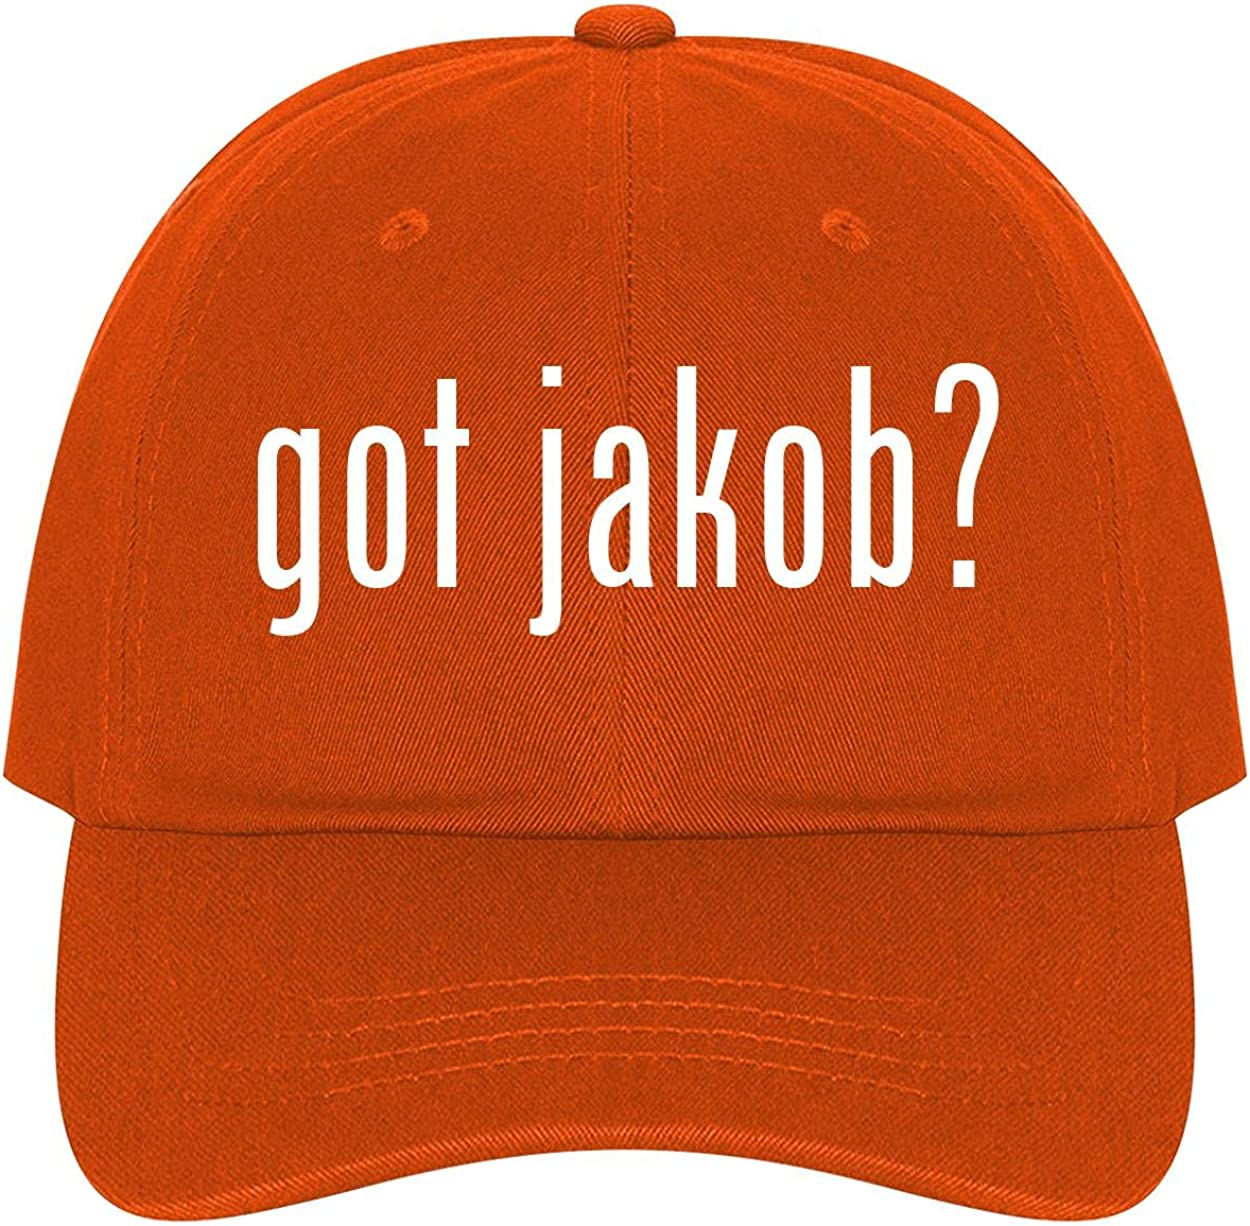 The Town Butler got Jakob? A Nice Comfortable Adjustable Dad Hat Cap